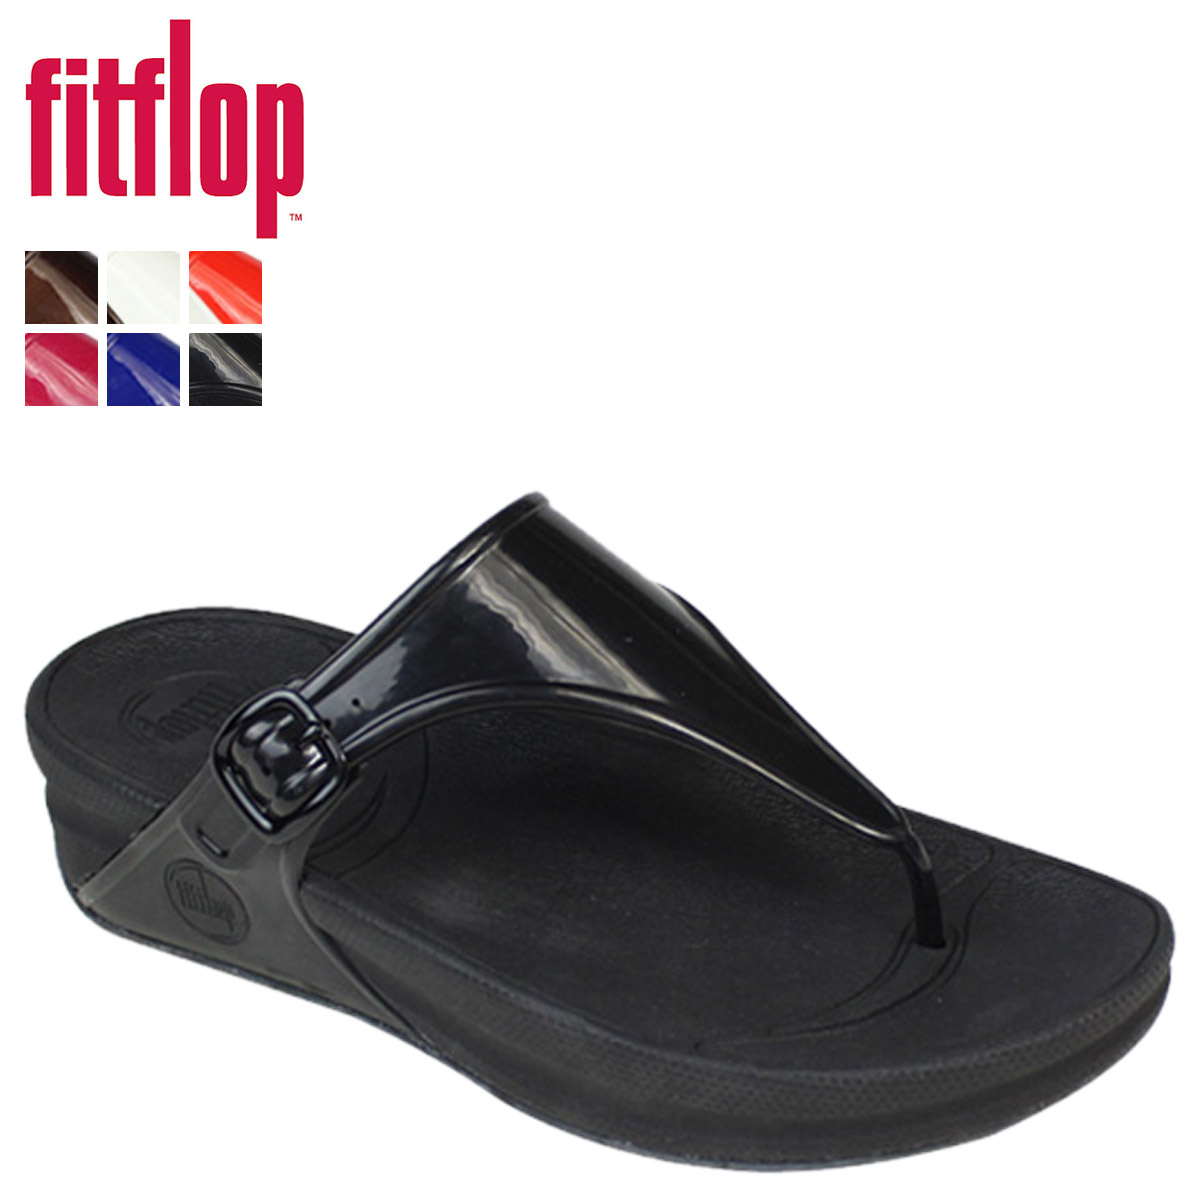 6a631194c ... the density put a diverse focus on the fit flop Sandals first. New  generation footwear brand revolutionized the modern shoe industry does not  understand ...